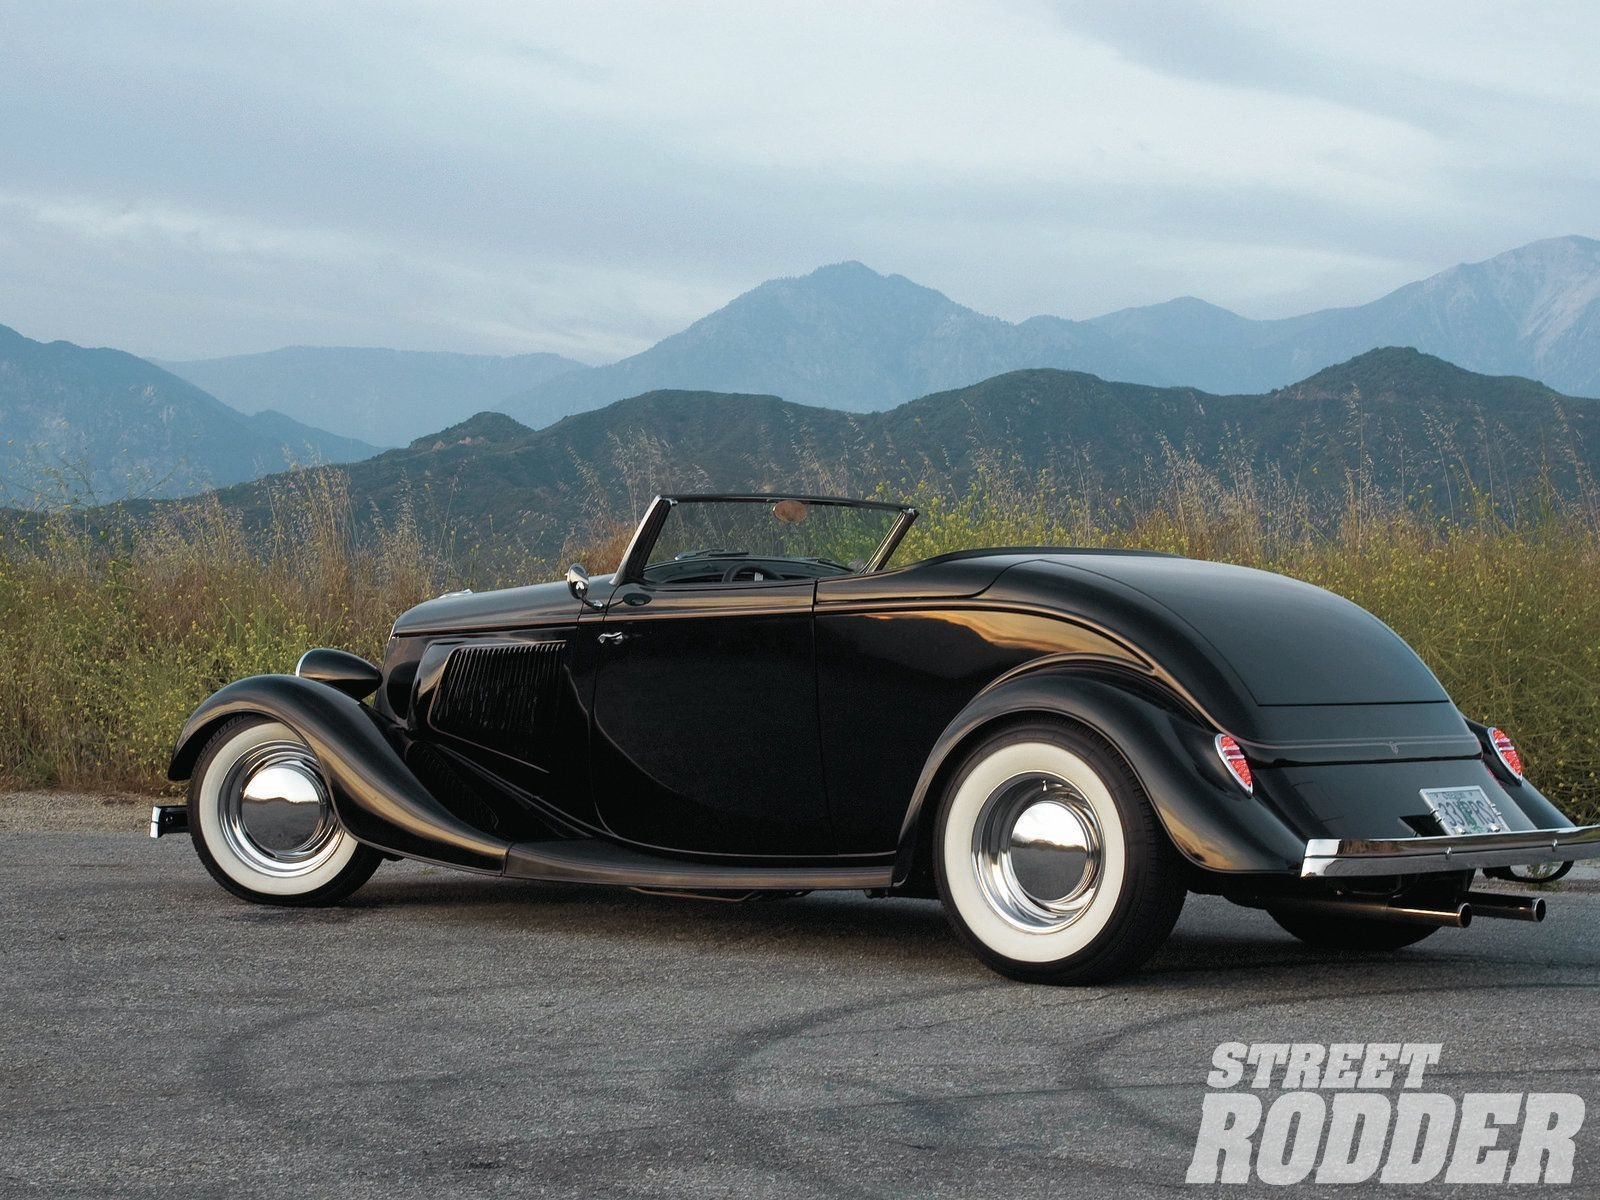 Old Ford Cars >> 1933 Ford Roadster Hotrod Hot Rod Custom Old school USA 1600x1200-06 wallpaper | 1600x1200 ...